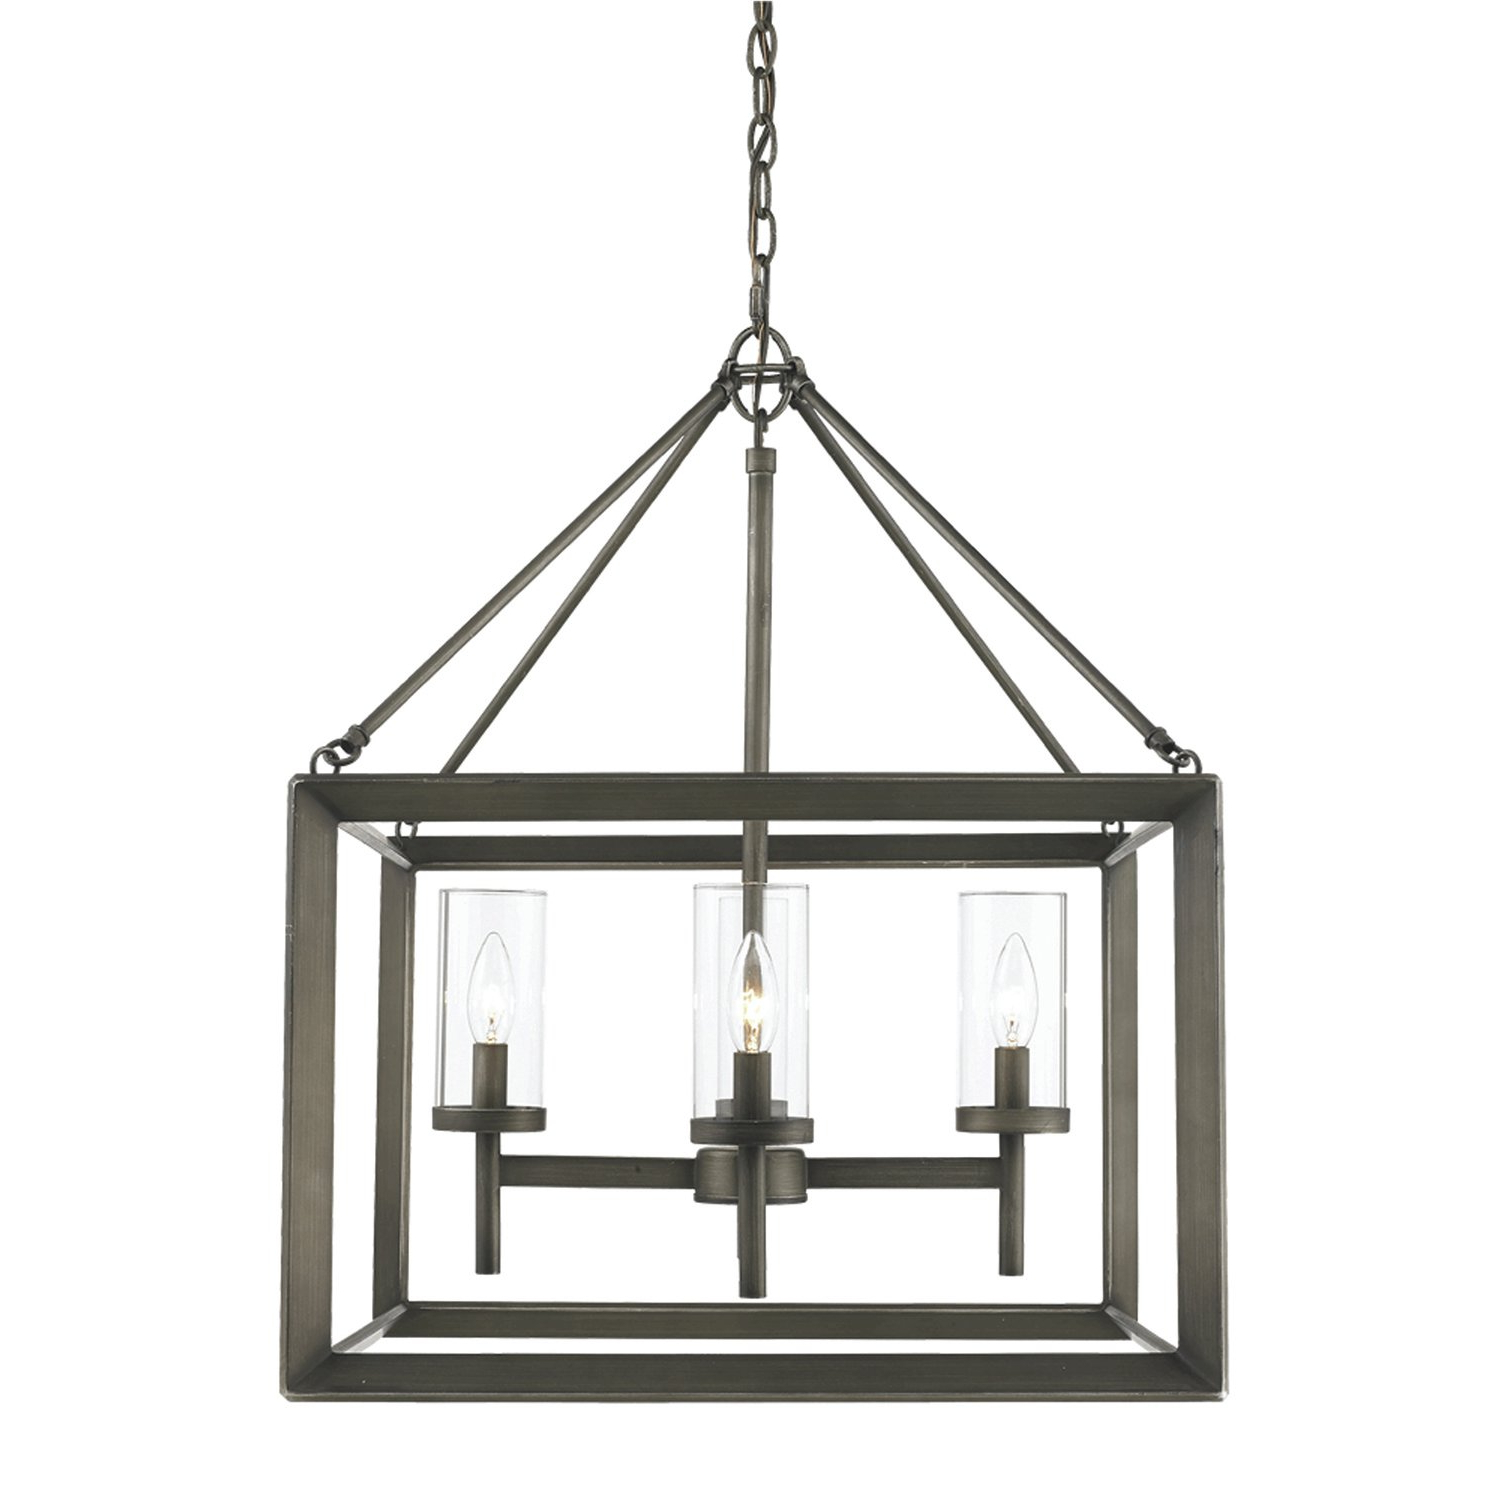 Thorne 6 Light Lantern Square / Rectangle Pendants Inside Current Thorne 4 Light Lantern Rectangle Pendant (View 14 of 20)